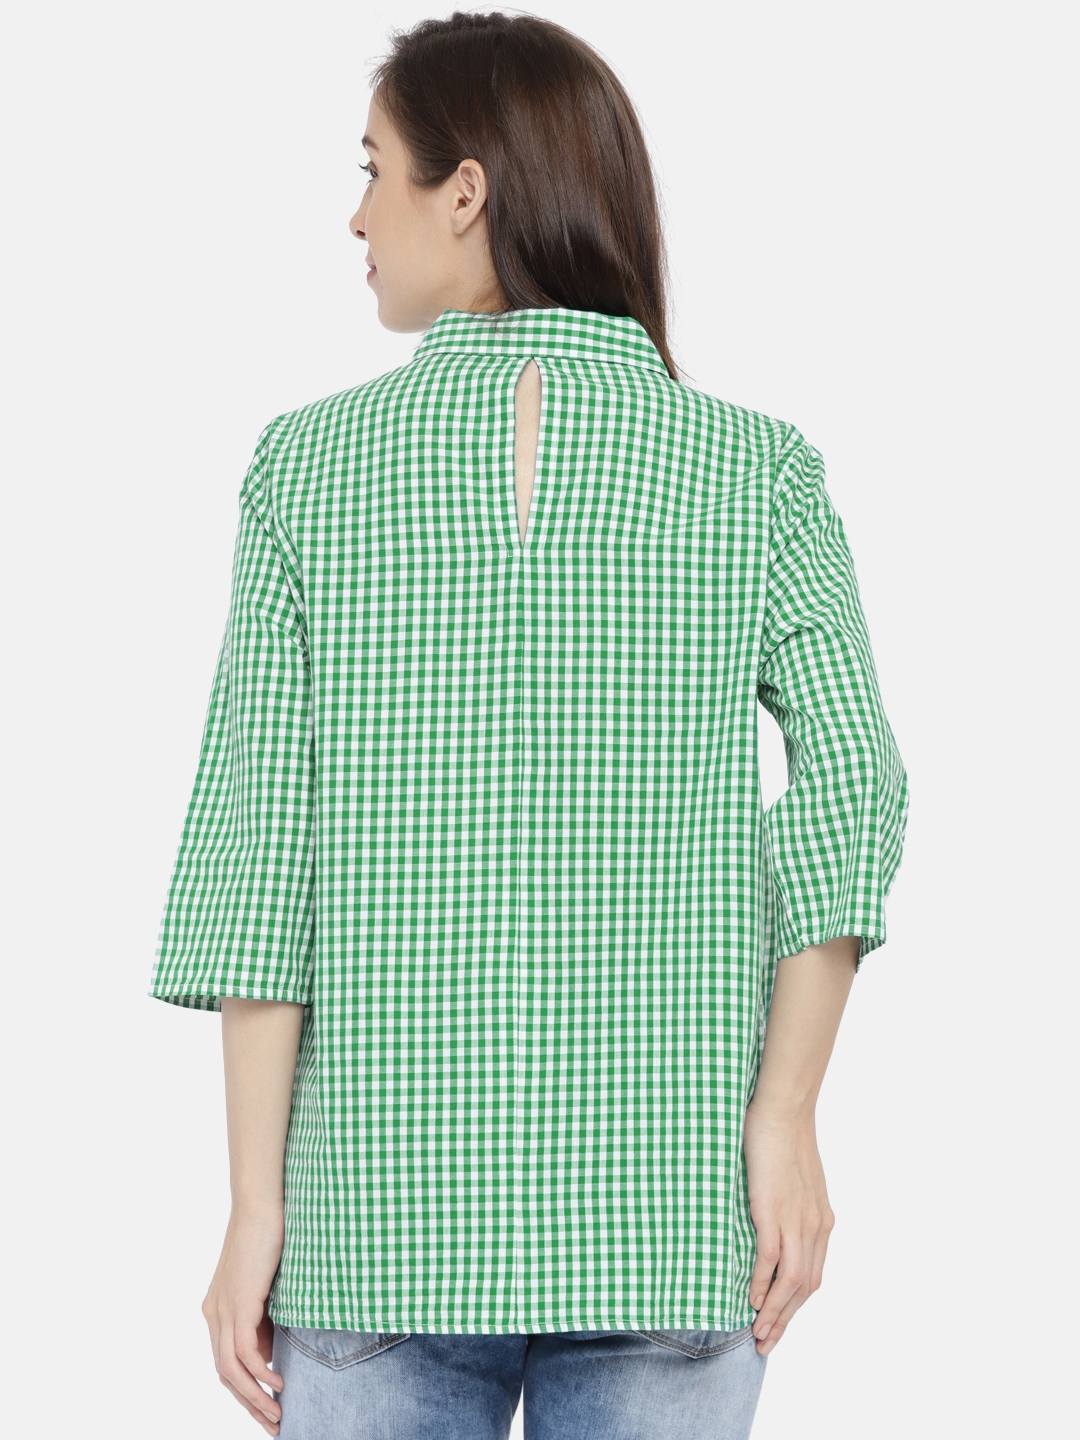 41fcad4ca8 Buy ONLY Women Green   White Regular Fit Checked Casual Shirt ...